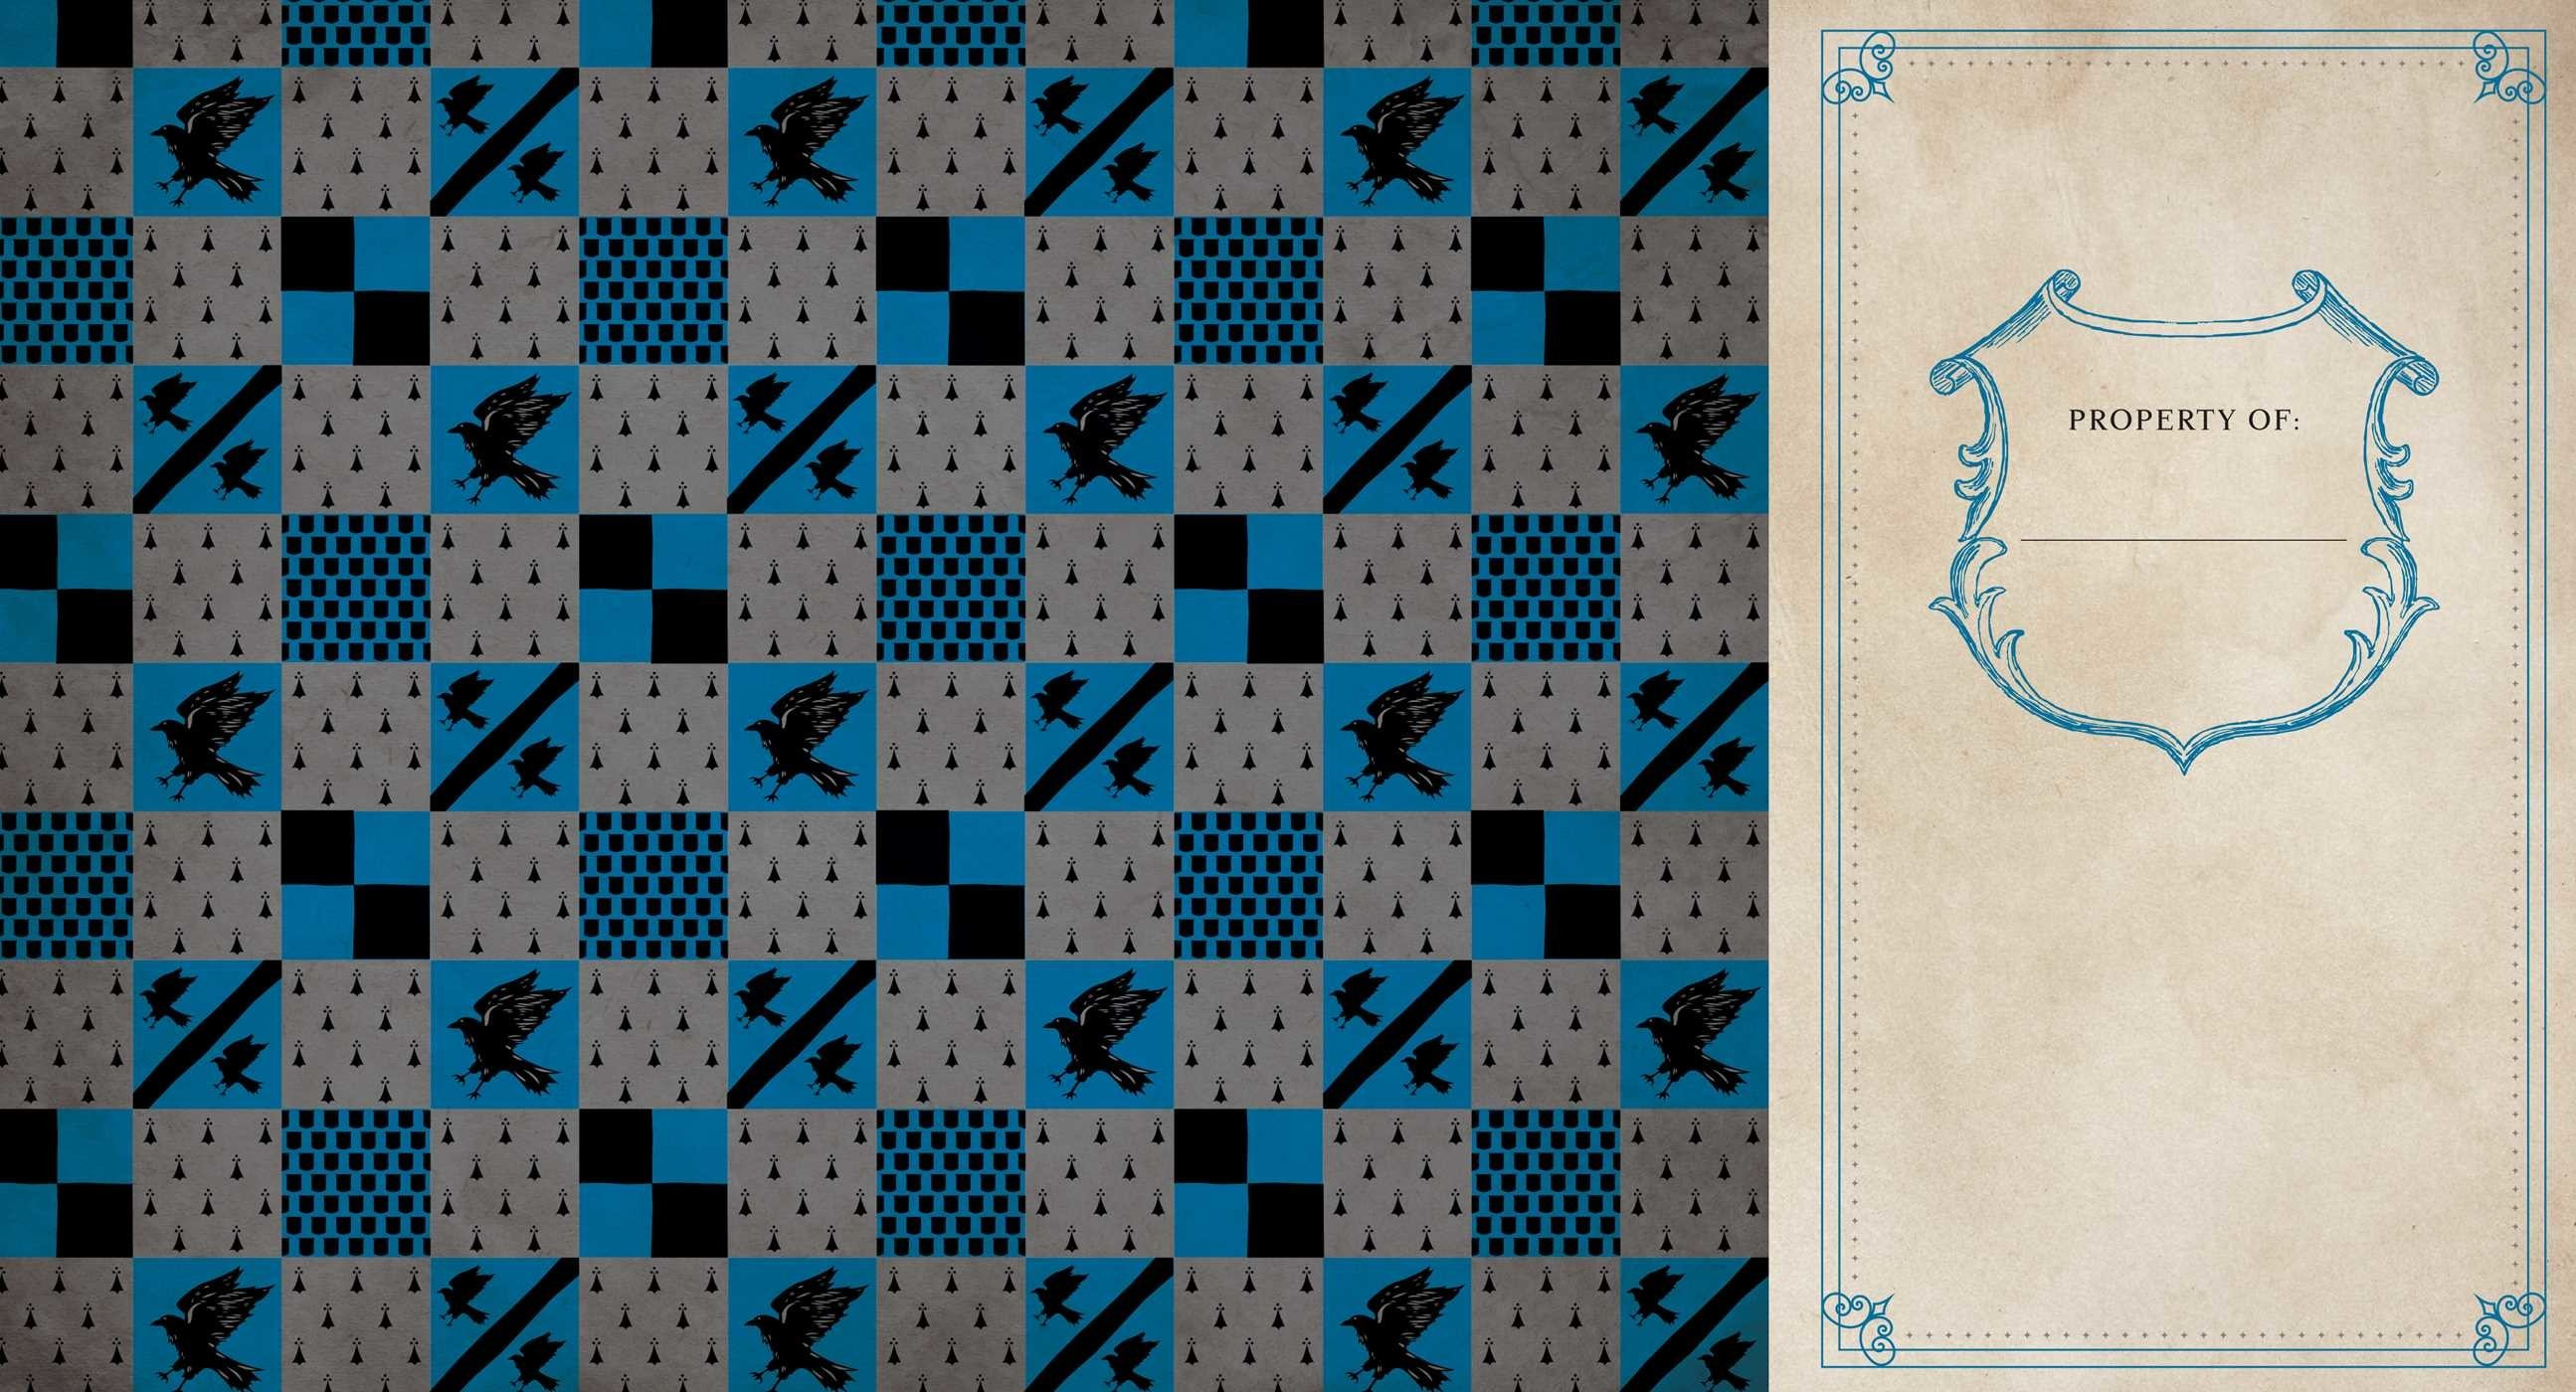 Res: 2590x1400, 0 Google Image Result Harry Potter Ravenclaw Hardcover Ruled Journal Book  by Insight